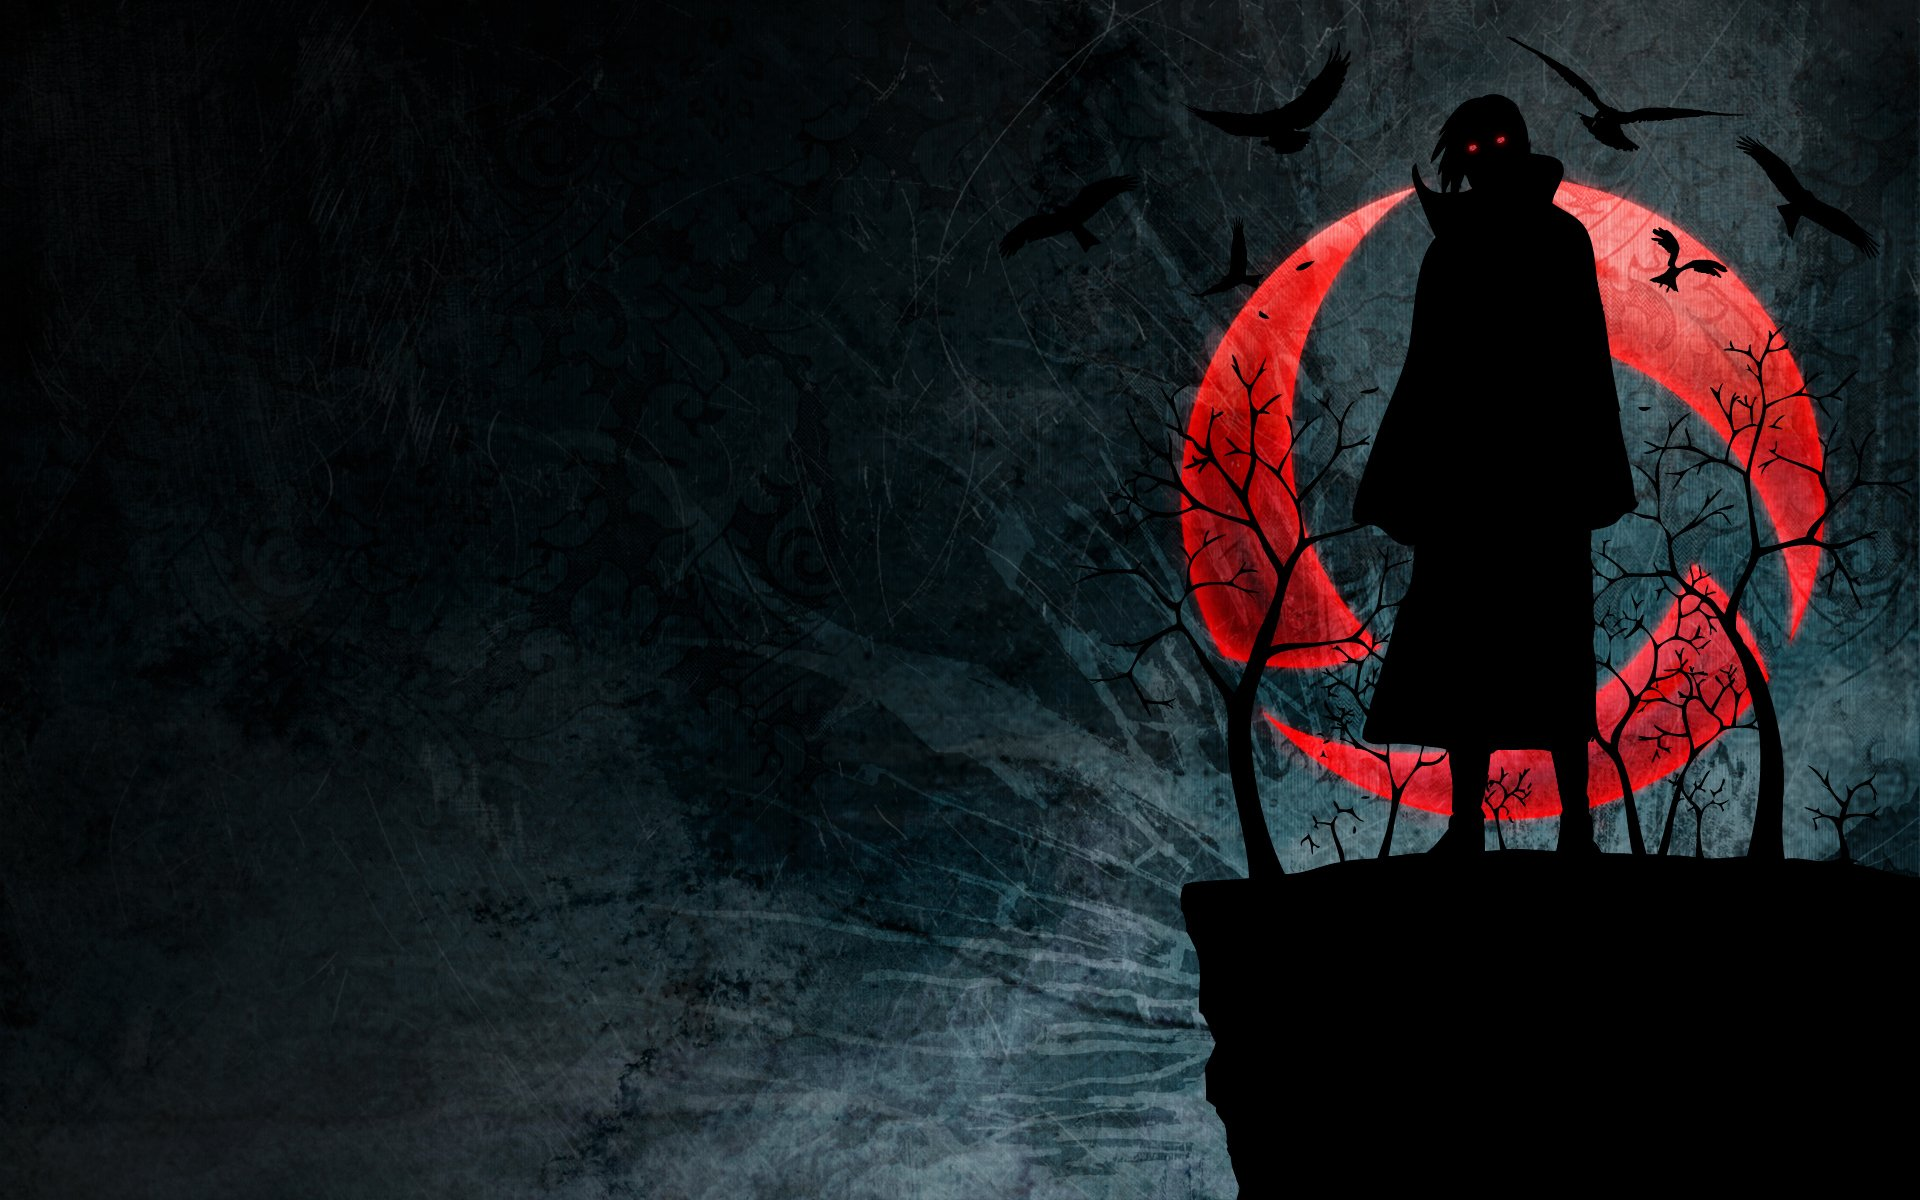 Anime - Naruto  Itachi Uchiha Anime Wallpaper